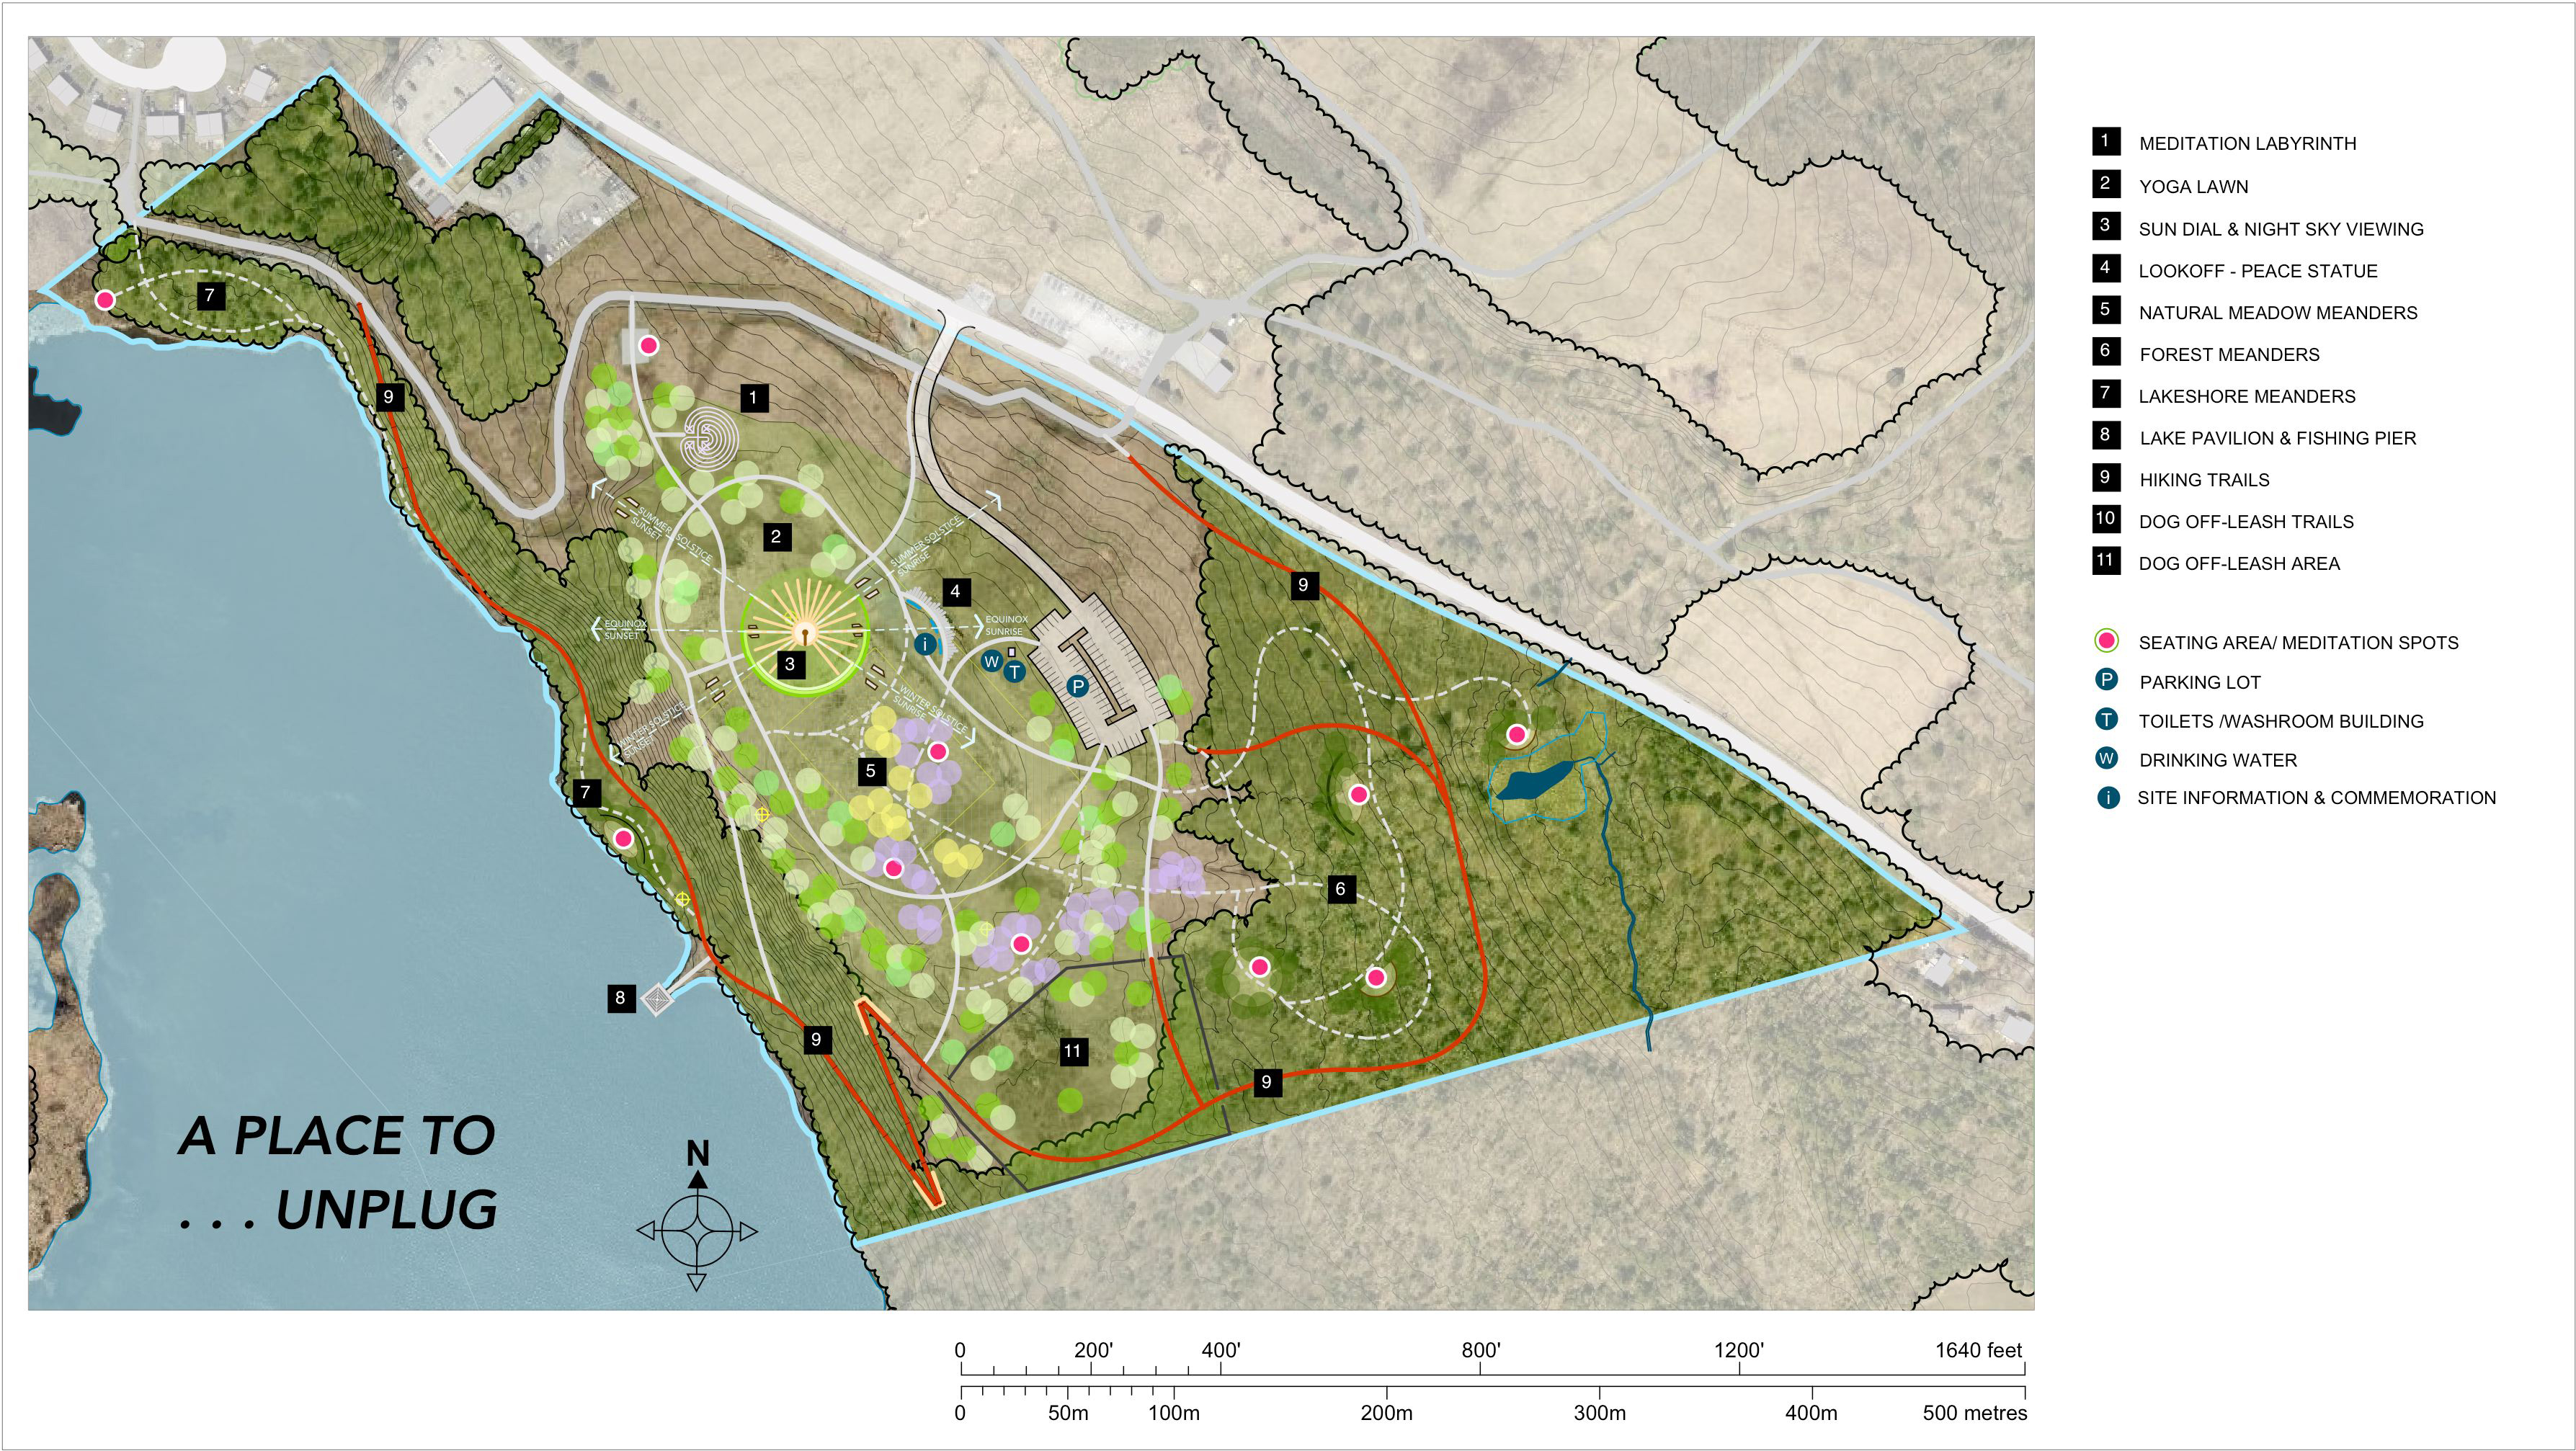 This is an image of the site plan for concept three, a place to unplug.